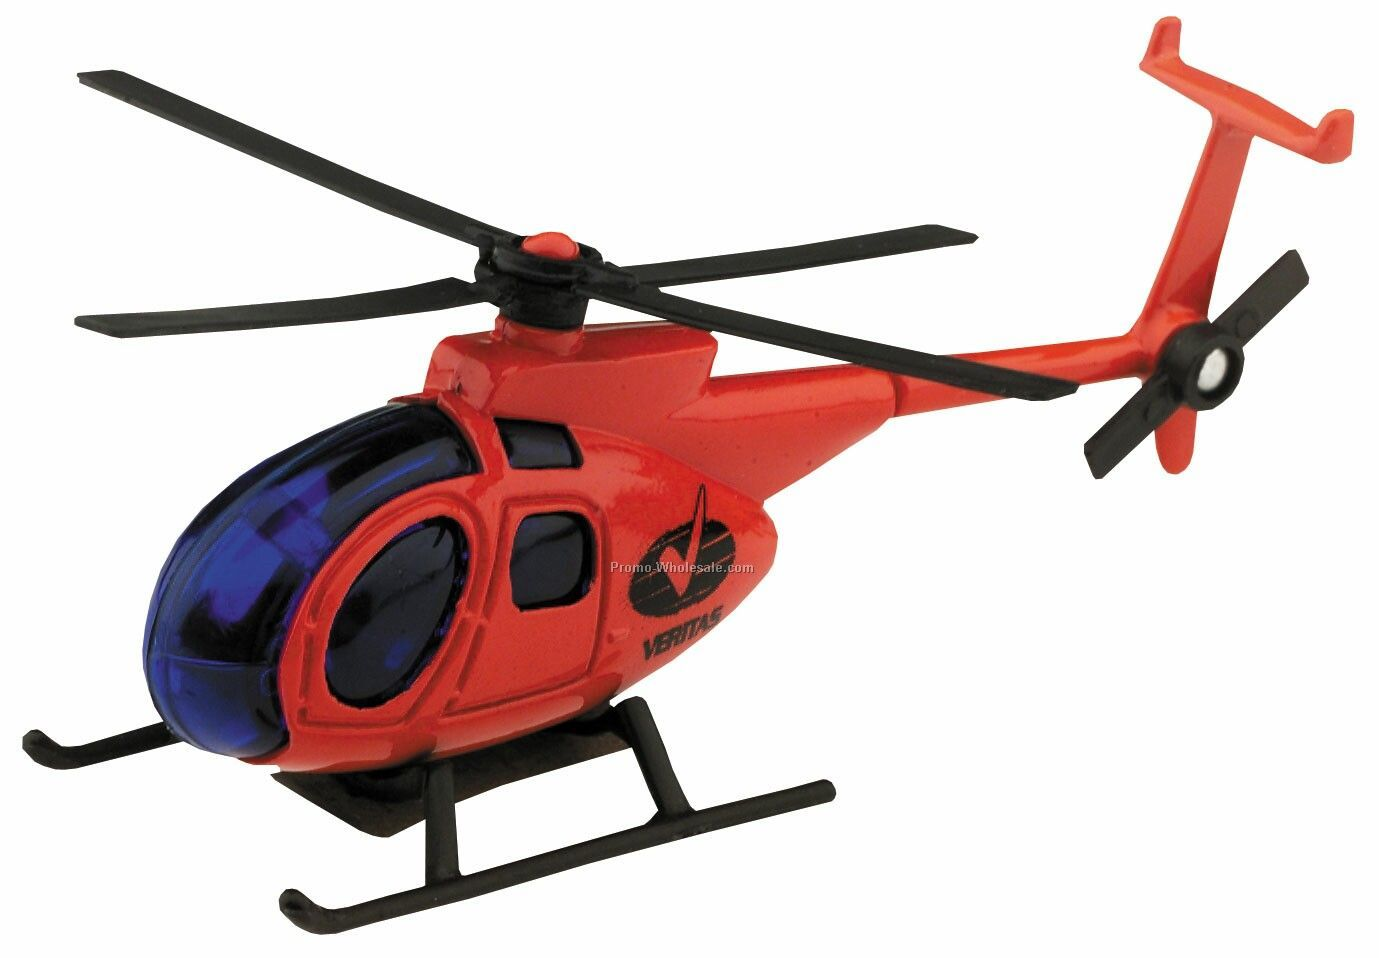 Red Hughes 500 Helicopter Die Cast Mini Vehicles - 3 Day